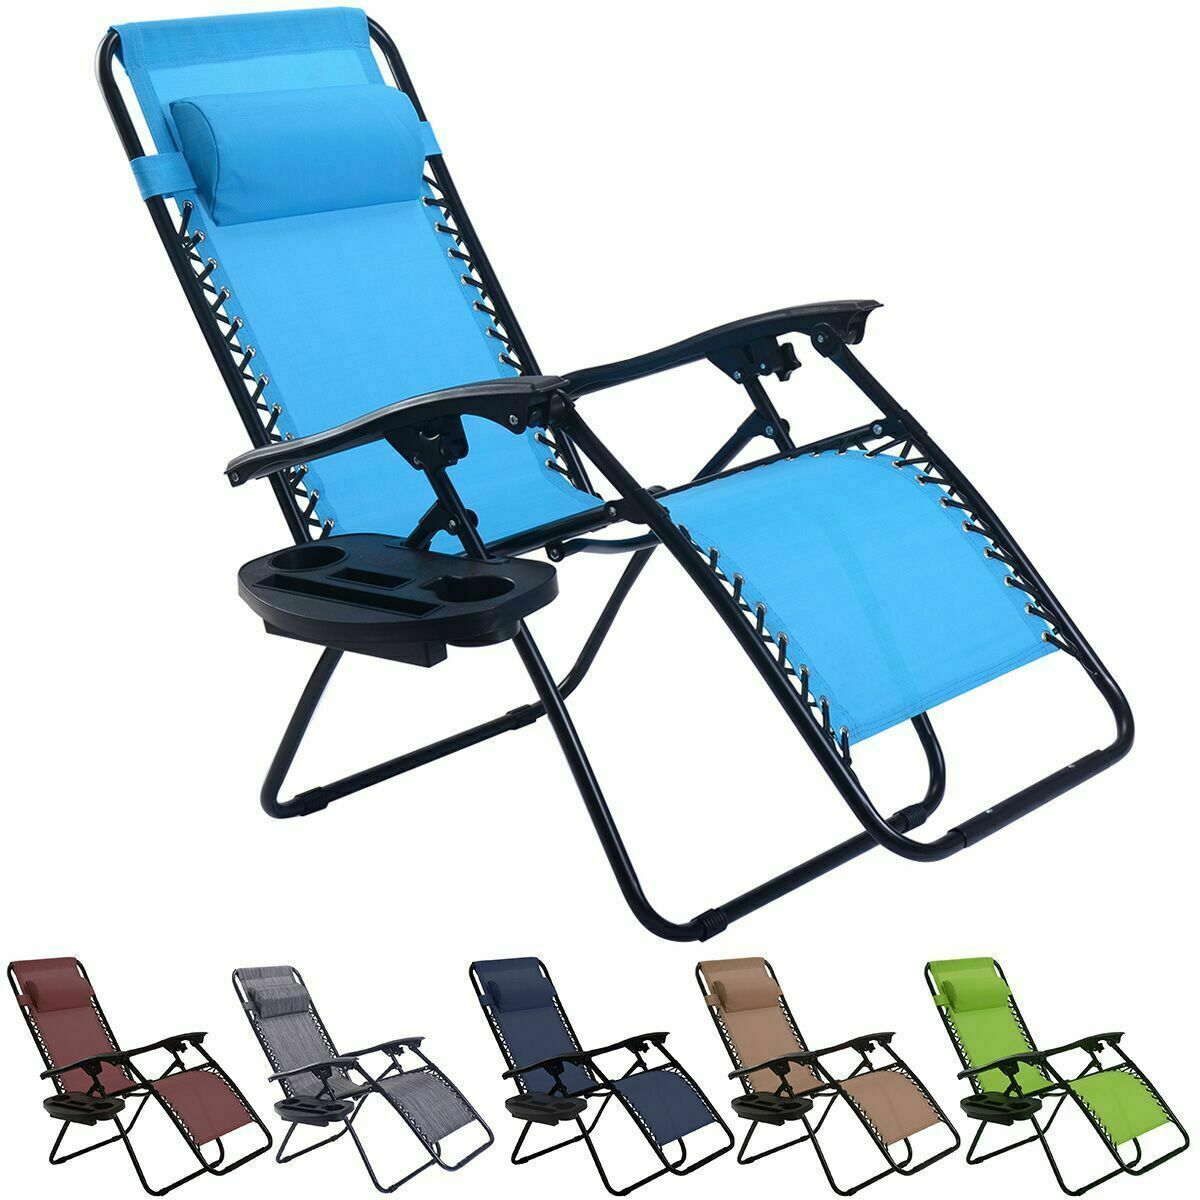 Details about Folding Zero Gravity Reclining Lounge Chair